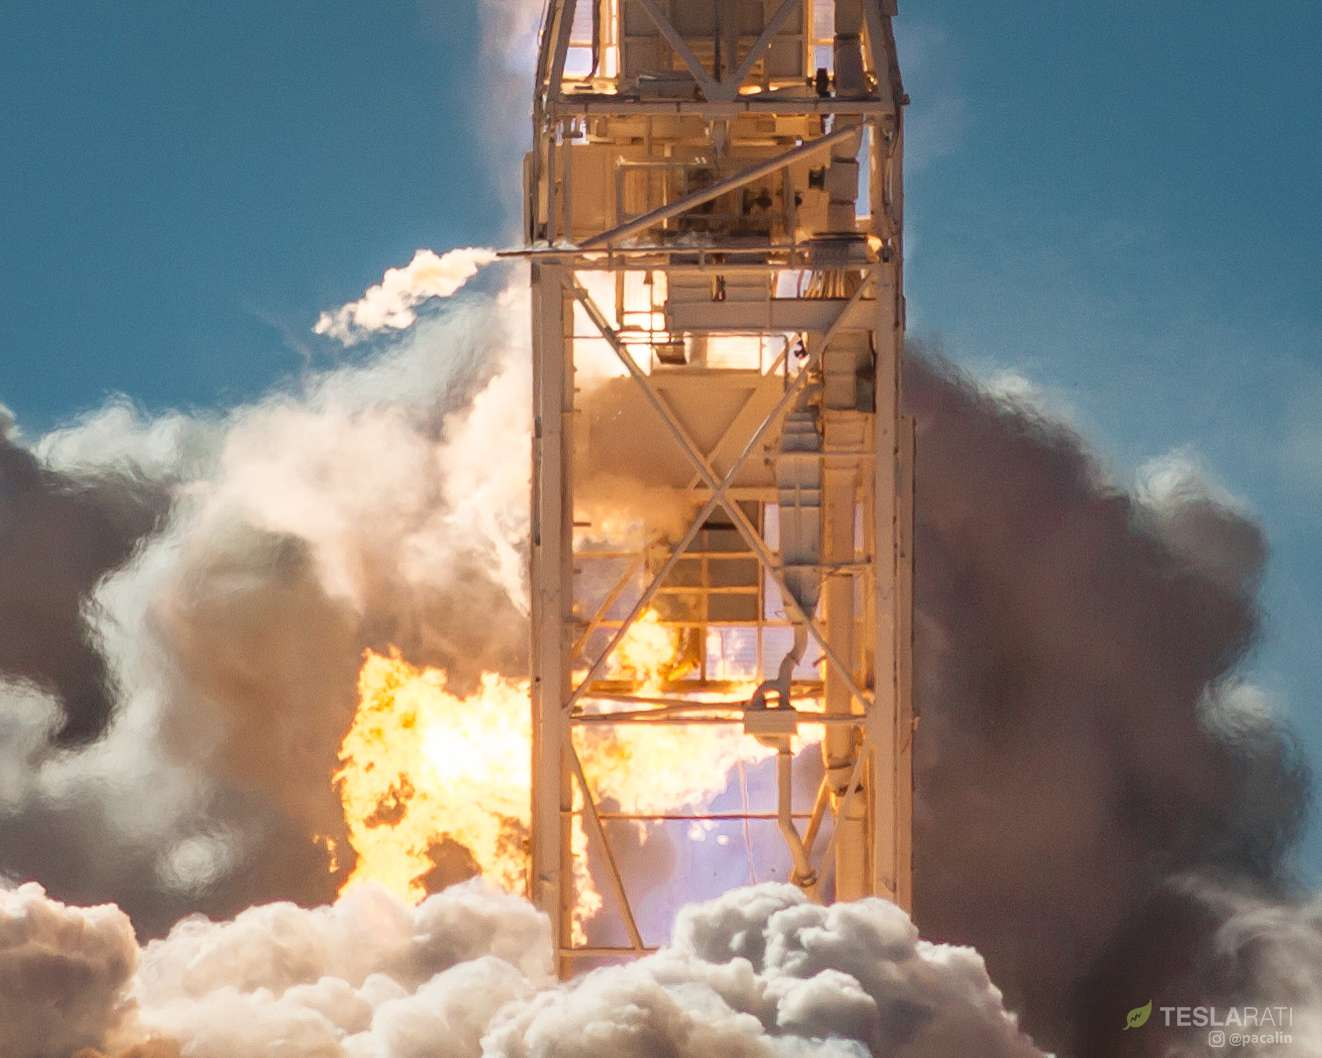 SpaceX hints at mystery Falcon 9 missions with record breaking launch target